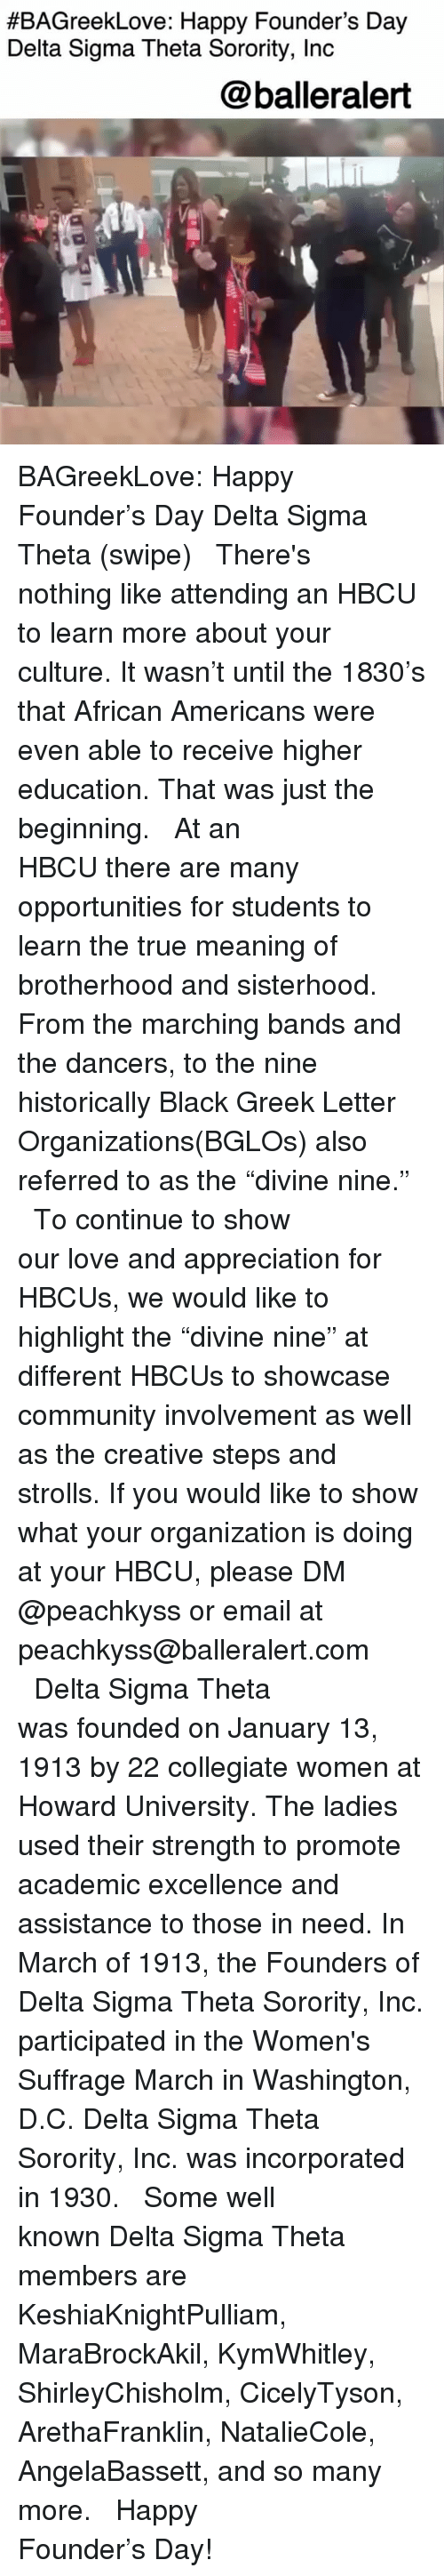 "Community, Love, and Memes:  #BAGreekLove: Happy Founder's Day  Delta Sigma Theta Sorority, Inc  @balleralert BAGreekLove: Happy Founder's Day Delta Sigma Theta (swipe) ⠀⠀⠀⠀⠀⠀⠀ ⠀⠀⠀⠀⠀⠀⠀ There's nothing like attending an HBCU to learn more about your culture. It wasn't until the 1830's that African Americans were even able to receive higher education. That was just the beginning. ⠀⠀⠀⠀⠀⠀⠀ ⠀⠀⠀⠀⠀⠀⠀ At an HBCU there are many opportunities for students to learn the true meaning of brotherhood and sisterhood. From the marching bands and the dancers, to the nine historically Black Greek Letter Organizations(BGLOs) also referred to as the ""divine nine."" ⠀⠀⠀⠀⠀⠀⠀ ⠀⠀⠀⠀⠀⠀⠀ To continue to show our love and appreciation for HBCUs, we would like to highlight the ""divine nine"" at different HBCUs to showcase community involvement as well as the creative steps and strolls. If you would like to show what your organization is doing at your HBCU, please DM @peachkyss or email at peachkyss@balleralert.com ⠀⠀⠀⠀⠀⠀⠀ ⠀⠀⠀⠀⠀⠀⠀ Delta Sigma Theta was founded on January 13, 1913 by 22 collegiate women at Howard University. The ladies used their strength to promote academic excellence and assistance to those in need. In March of 1913, the Founders of Delta Sigma Theta Sorority, Inc. participated in the Women's Suffrage March in Washington, D.C. Delta Sigma Theta Sorority, Inc. was incorporated in 1930. ⠀⠀⠀⠀⠀⠀⠀ ⠀⠀⠀⠀⠀⠀⠀ Some well known Delta Sigma Theta members are KeshiaKnightPulliam, MaraBrockAkil, KymWhitley, ShirleyChisholm, CicelyTyson, ArethaFranklin, NatalieCole, AngelaBassett, and so many more. ⠀⠀⠀⠀⠀⠀⠀ ⠀⠀⠀⠀⠀⠀⠀ Happy Founder's Day!"